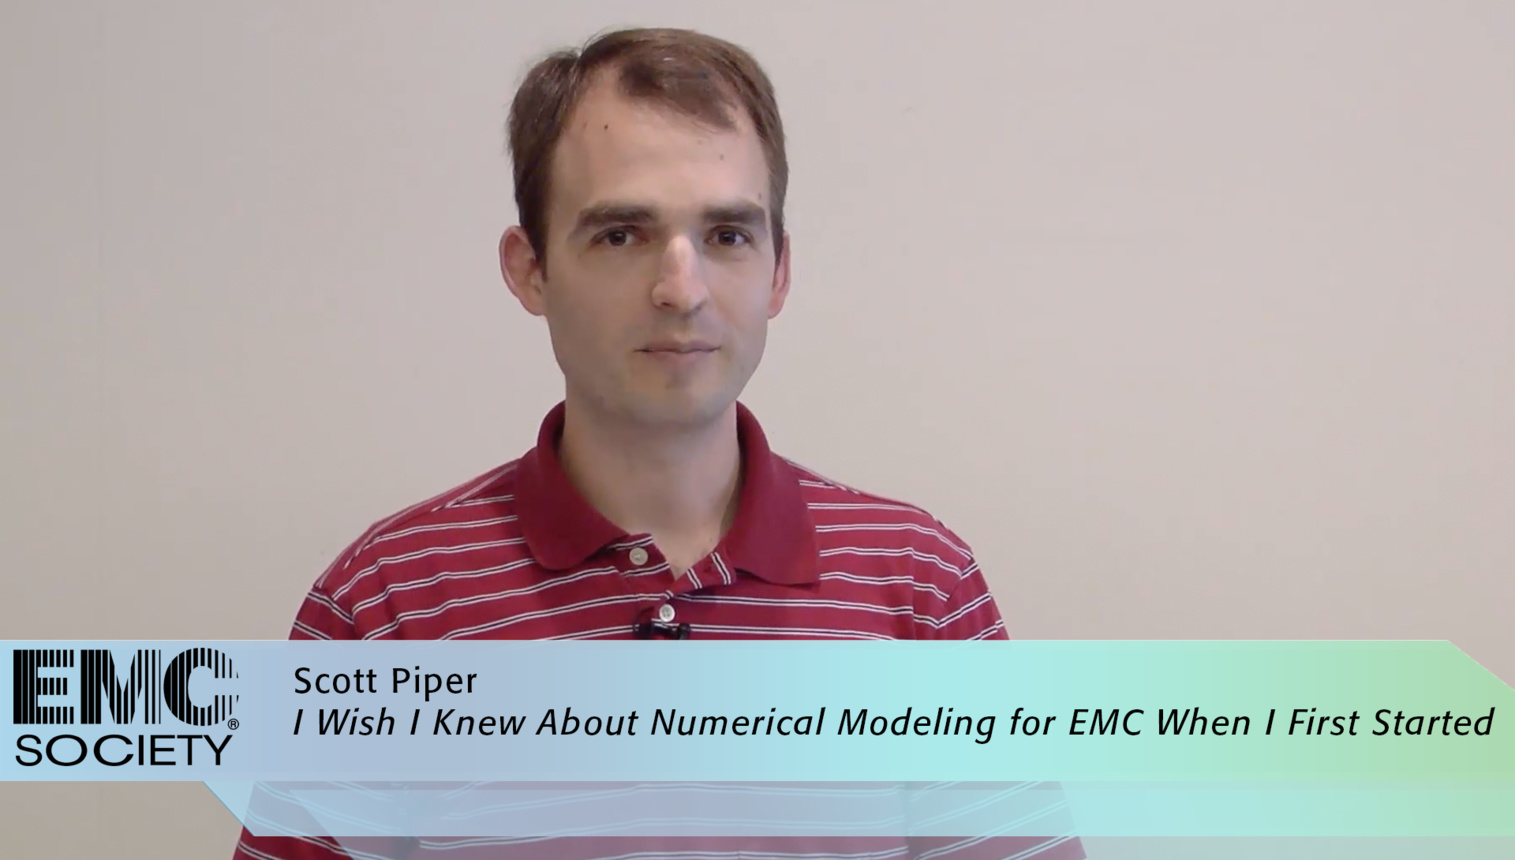 EMC - Scott Piper - I Wish I Knew about Numerical Modeling for EMC when I First Started